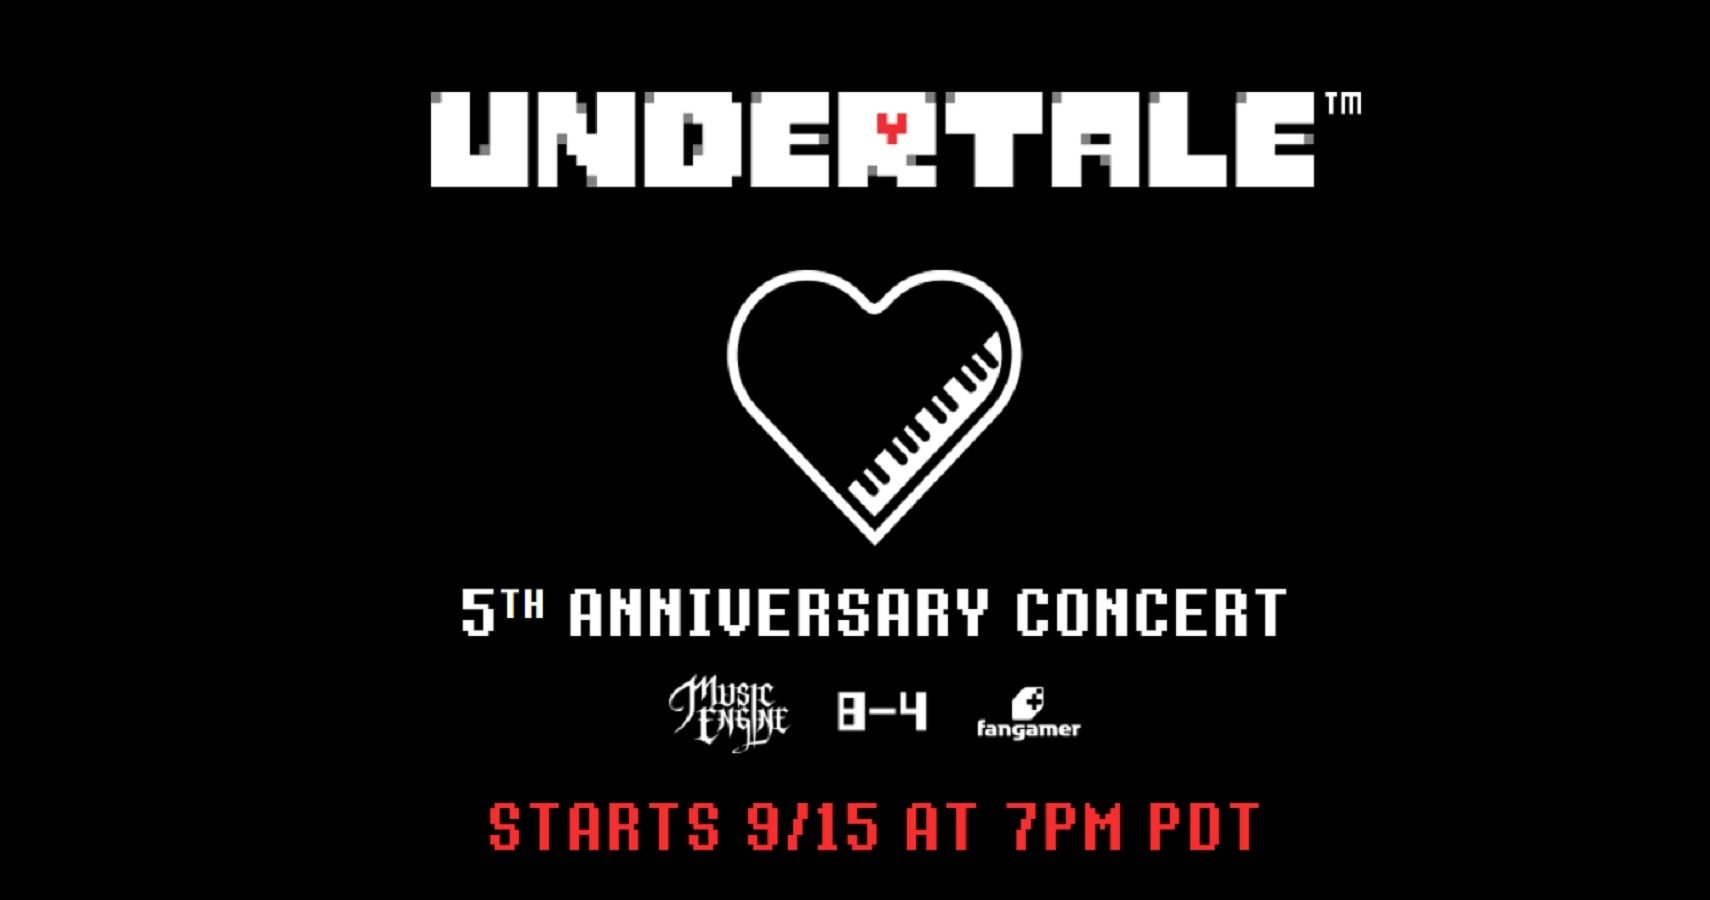 Celebrate Undertale's 5th Anniversary With Free Concert Next Week